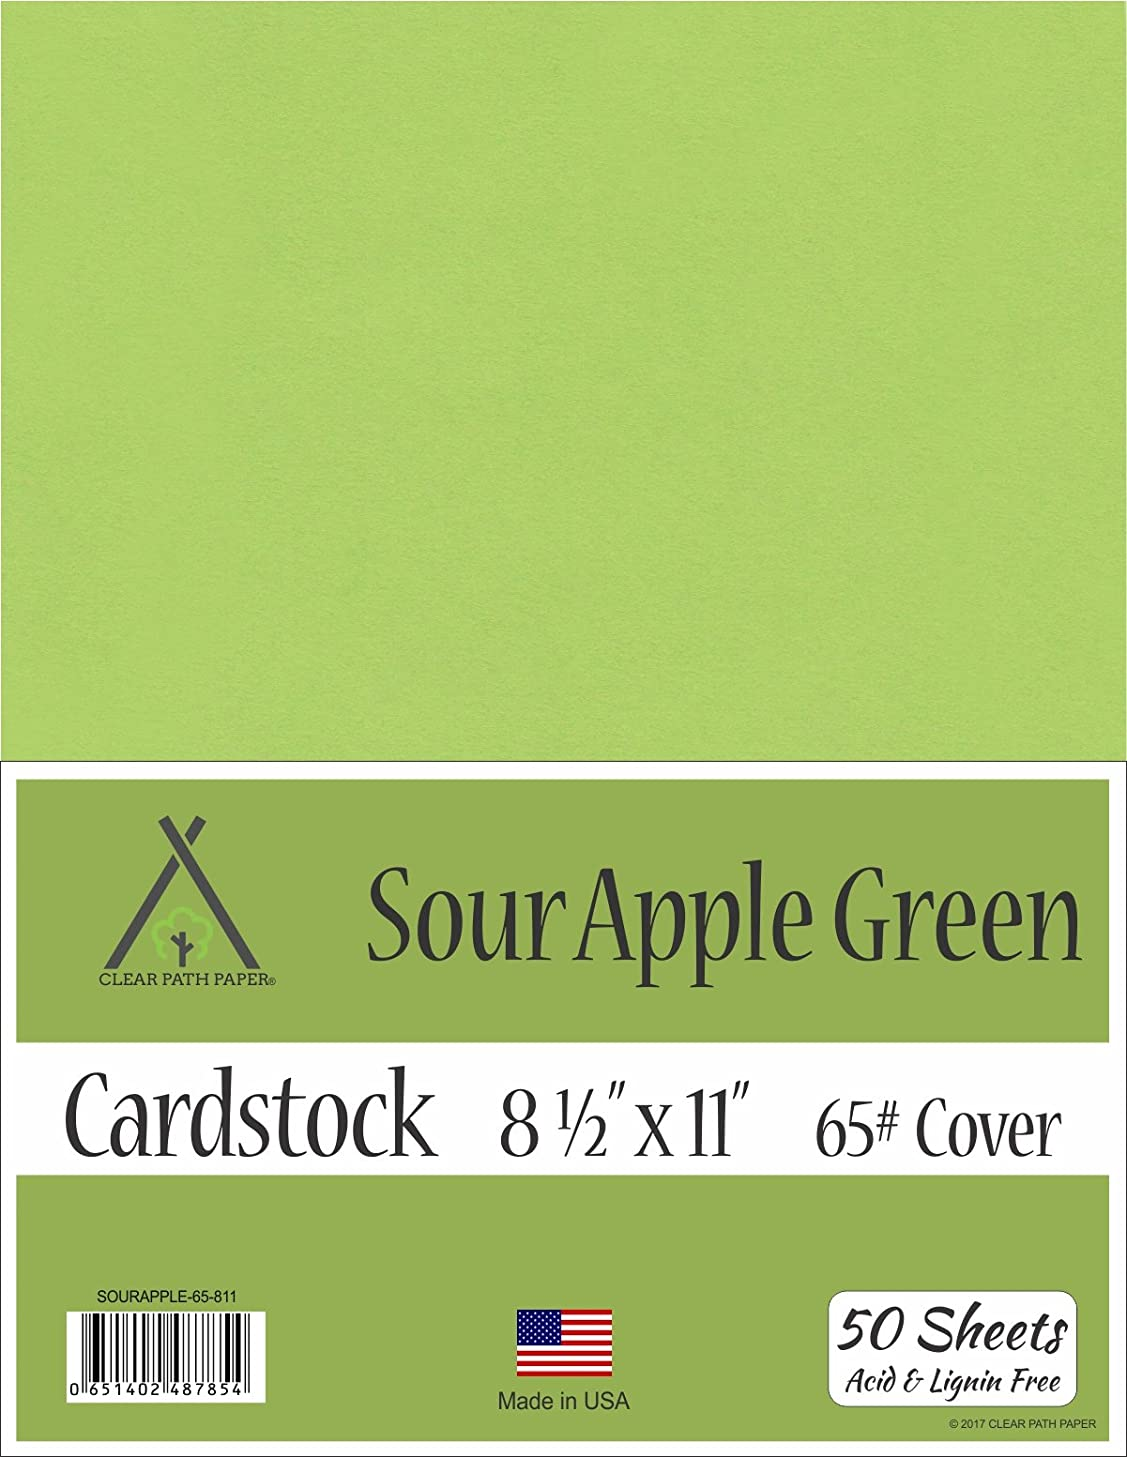 Sour Apple Green Cardstock - 8.5 x 11 inch - 65Lb Cover - 50 Sheets